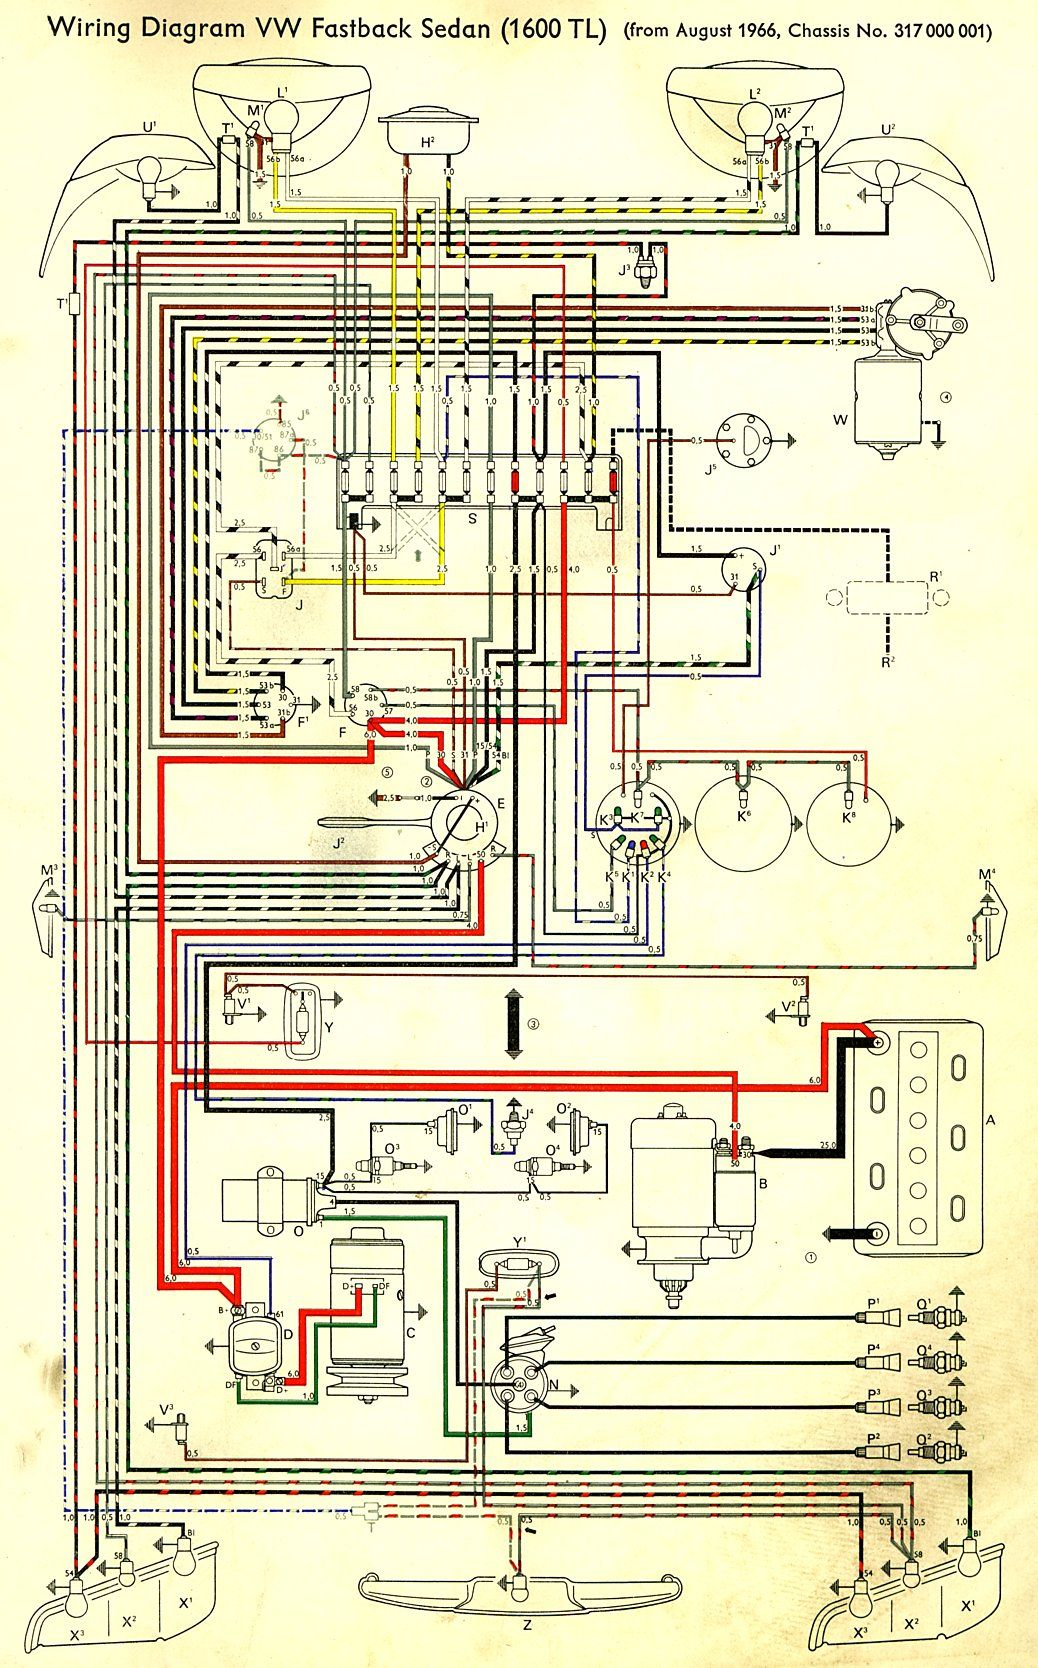 Wiring diagram type 928 model 84 page 1 wiring 97 front engine, electronic  ingnition/… | Electrical wiring diagram, Types of electrical wiring,  Electrical wiringPinterest